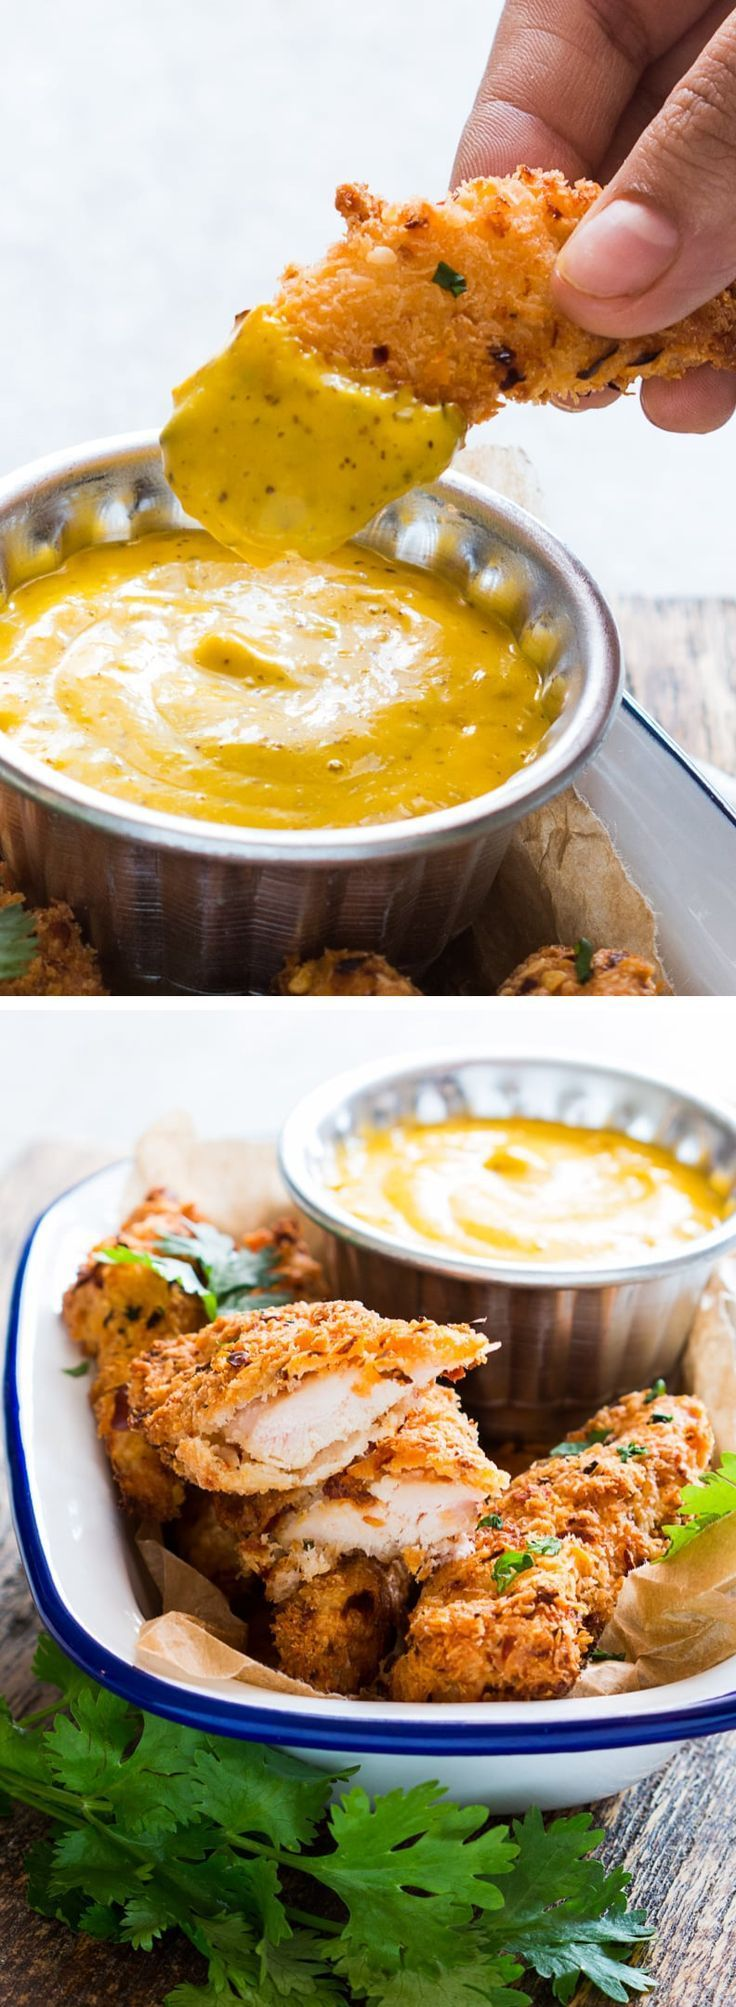 Baked Coconut Chicken Tenders with Mango Mustard Sauce